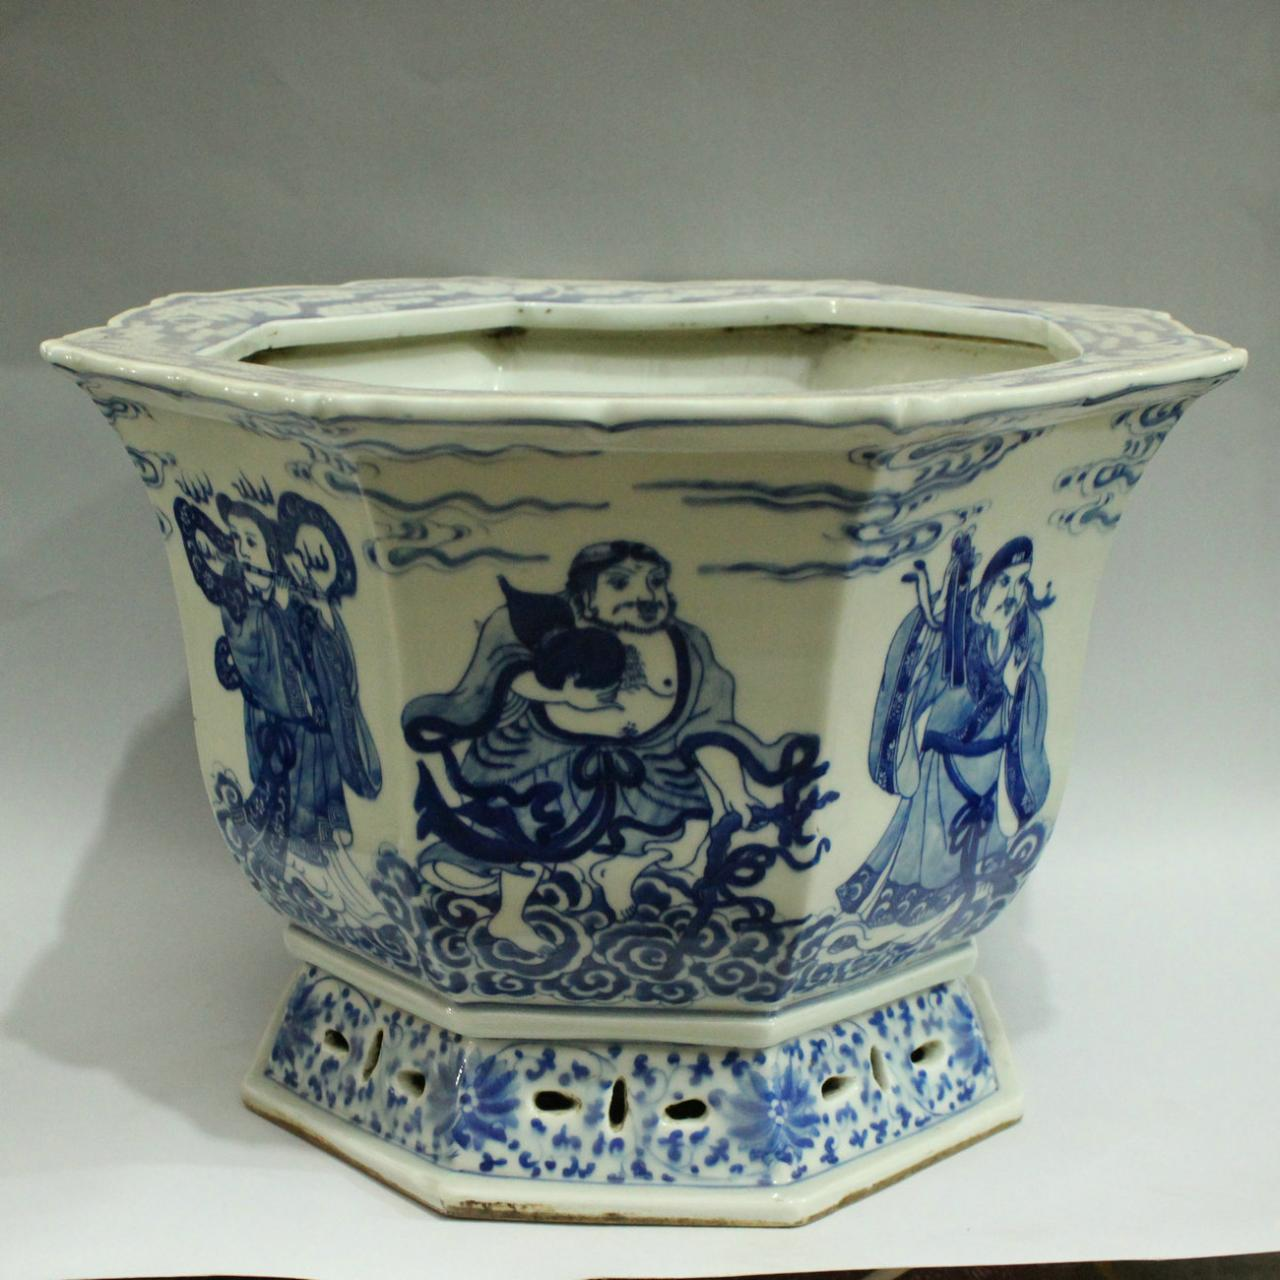 Exquisitely carved blue and white antique ceramic flower pot